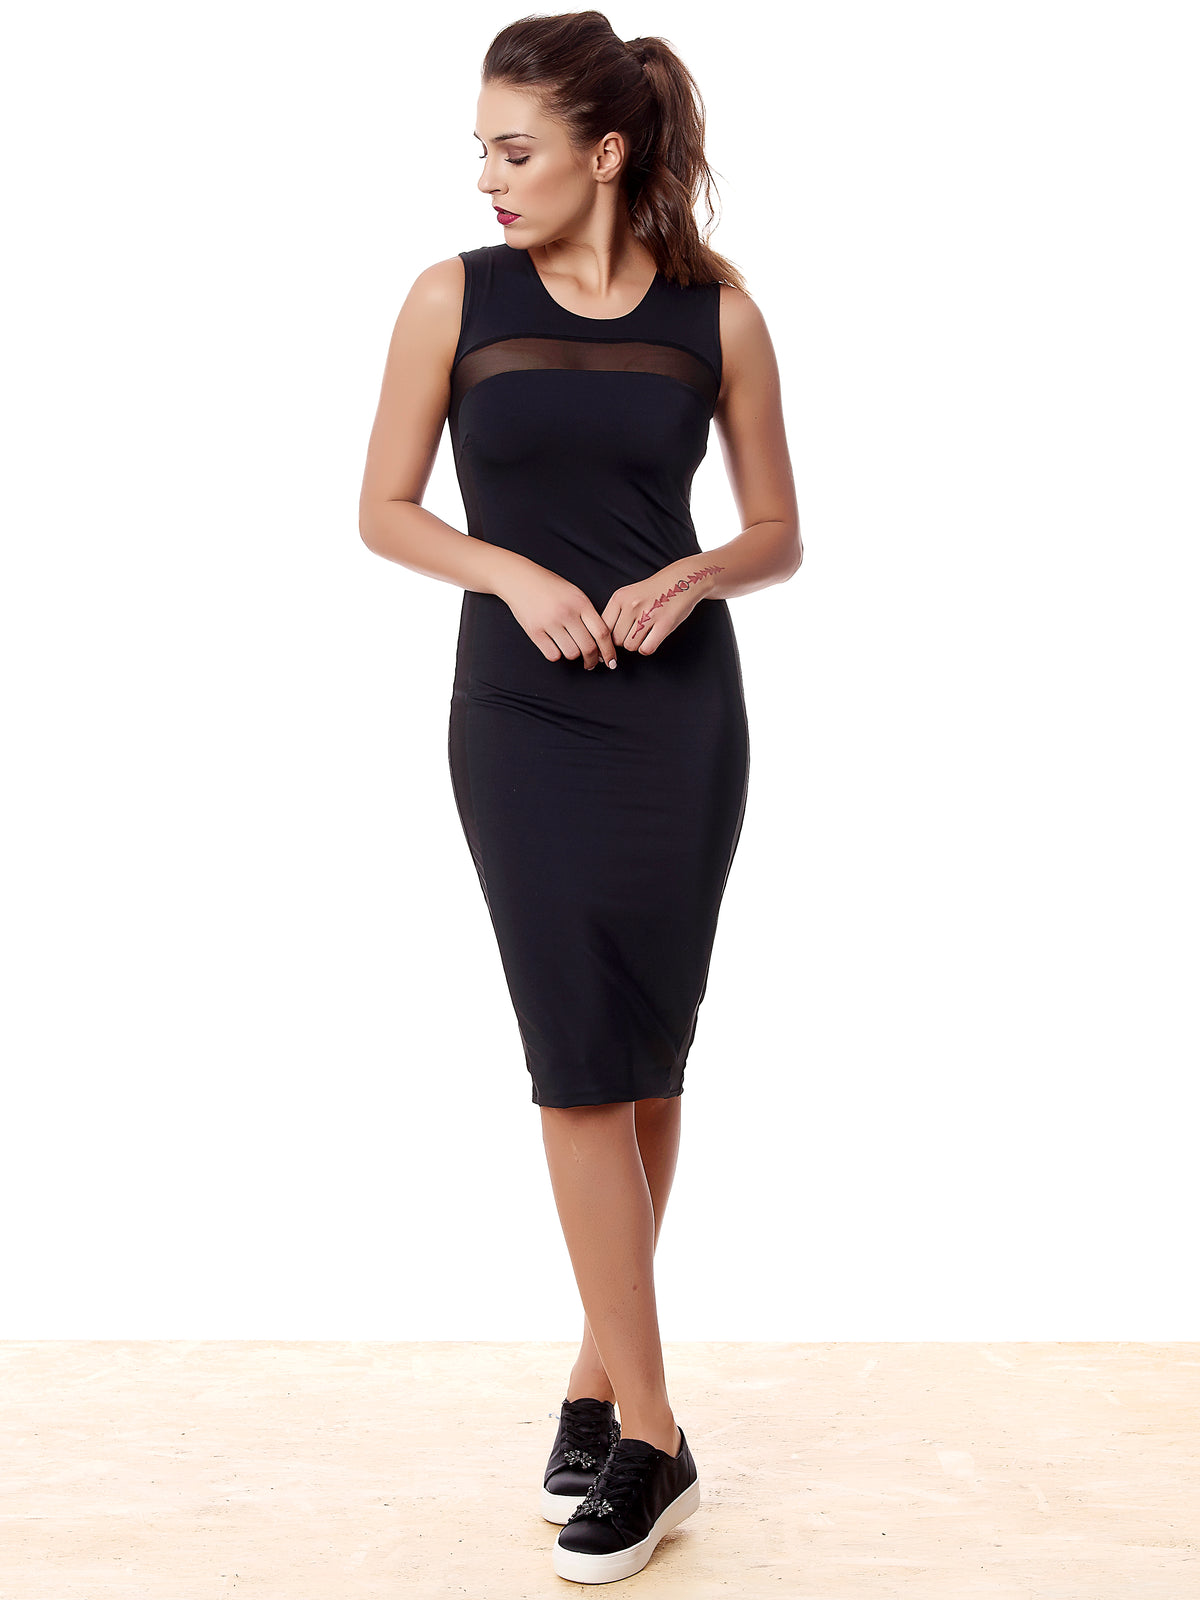 https://cdn.shopify.com/s/files/1/0143/6044/5014/files/Sport-Midi-Dress-F_1024x1024_2x-removebg-preview.png?4901